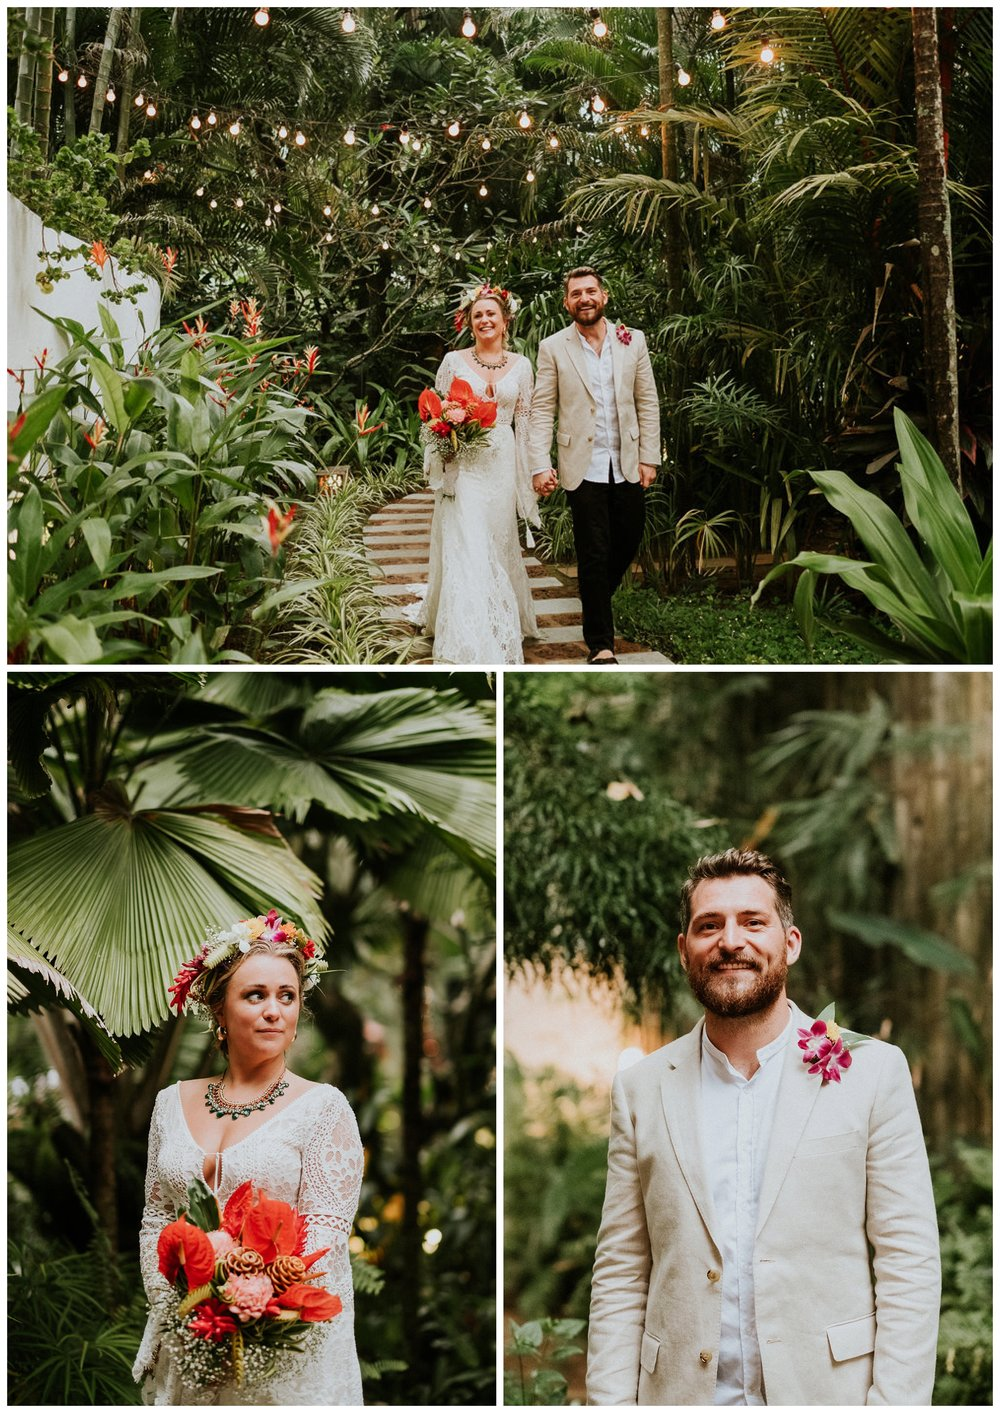 Goa Destination Wedding Photographer India Colouful Fun Joanna Nicole Photography Coco Shambhala18.jpg